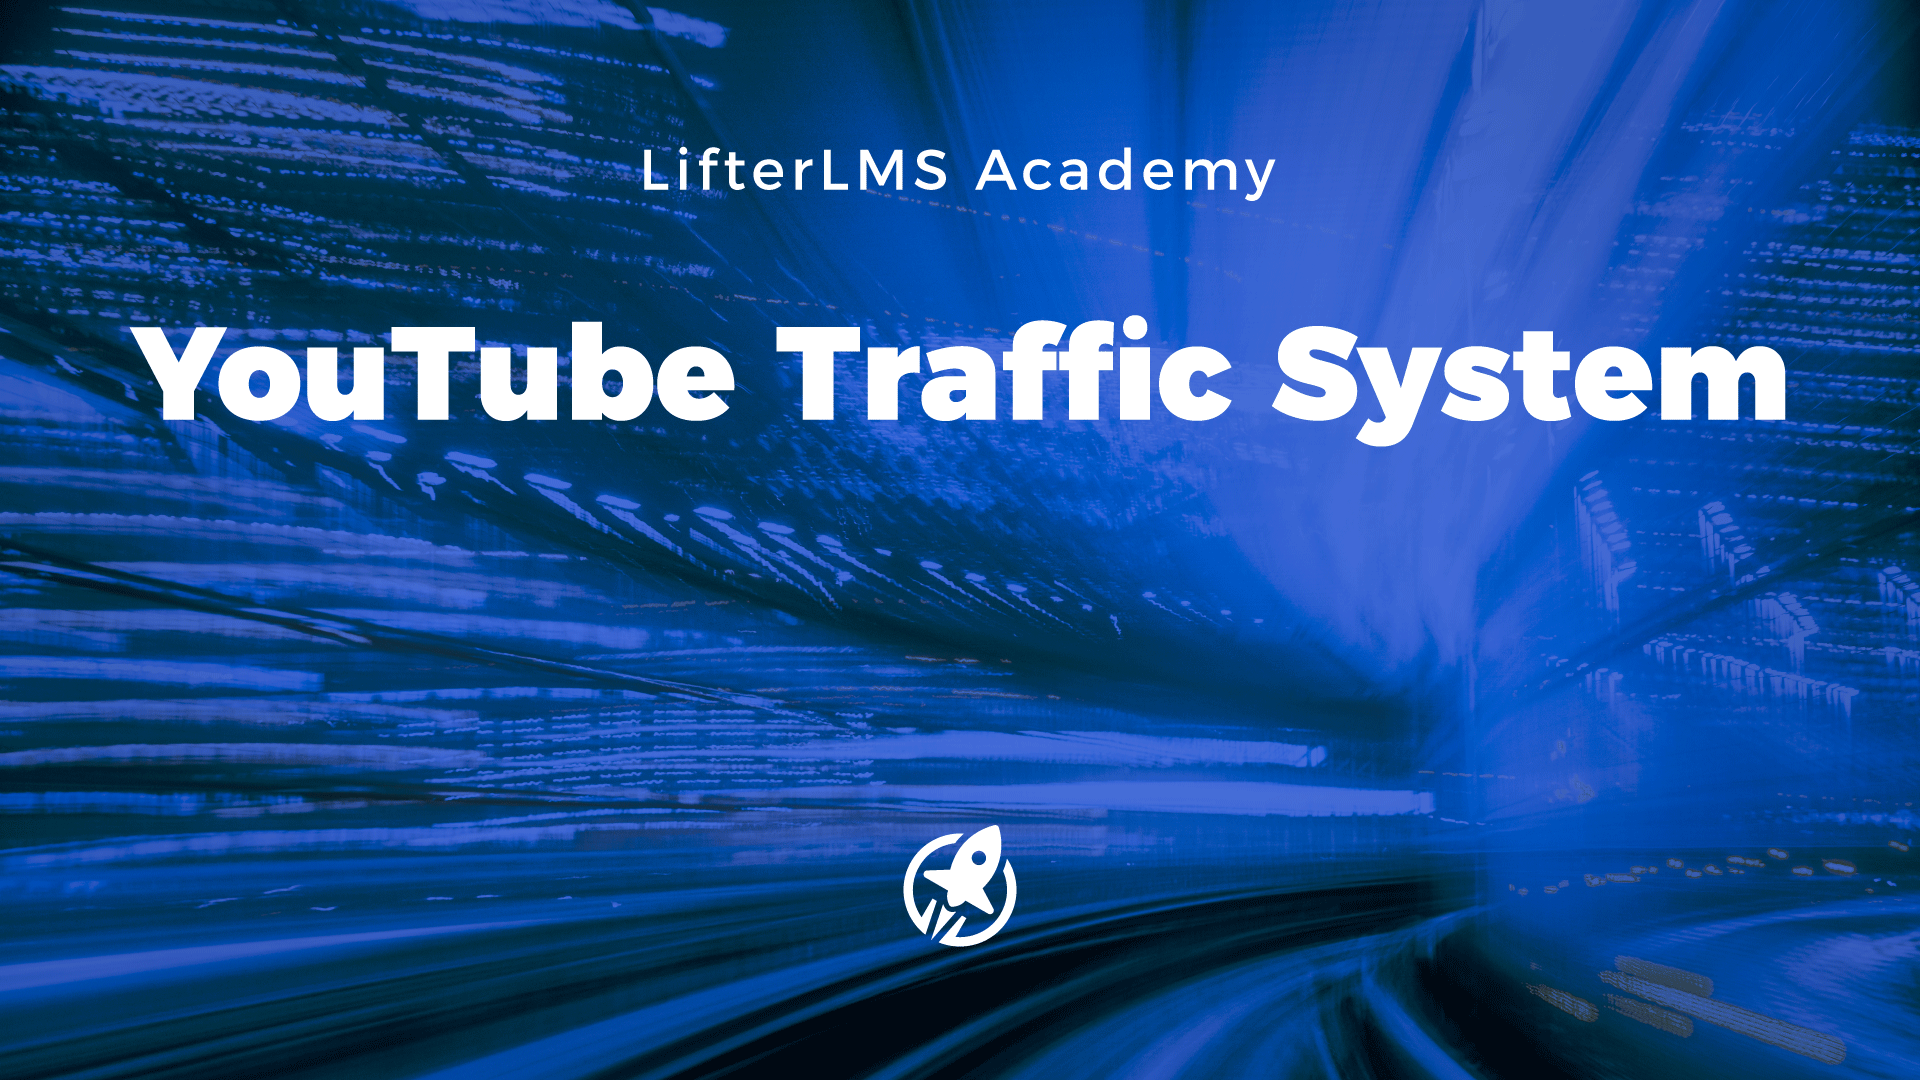 YouTube Traffic System